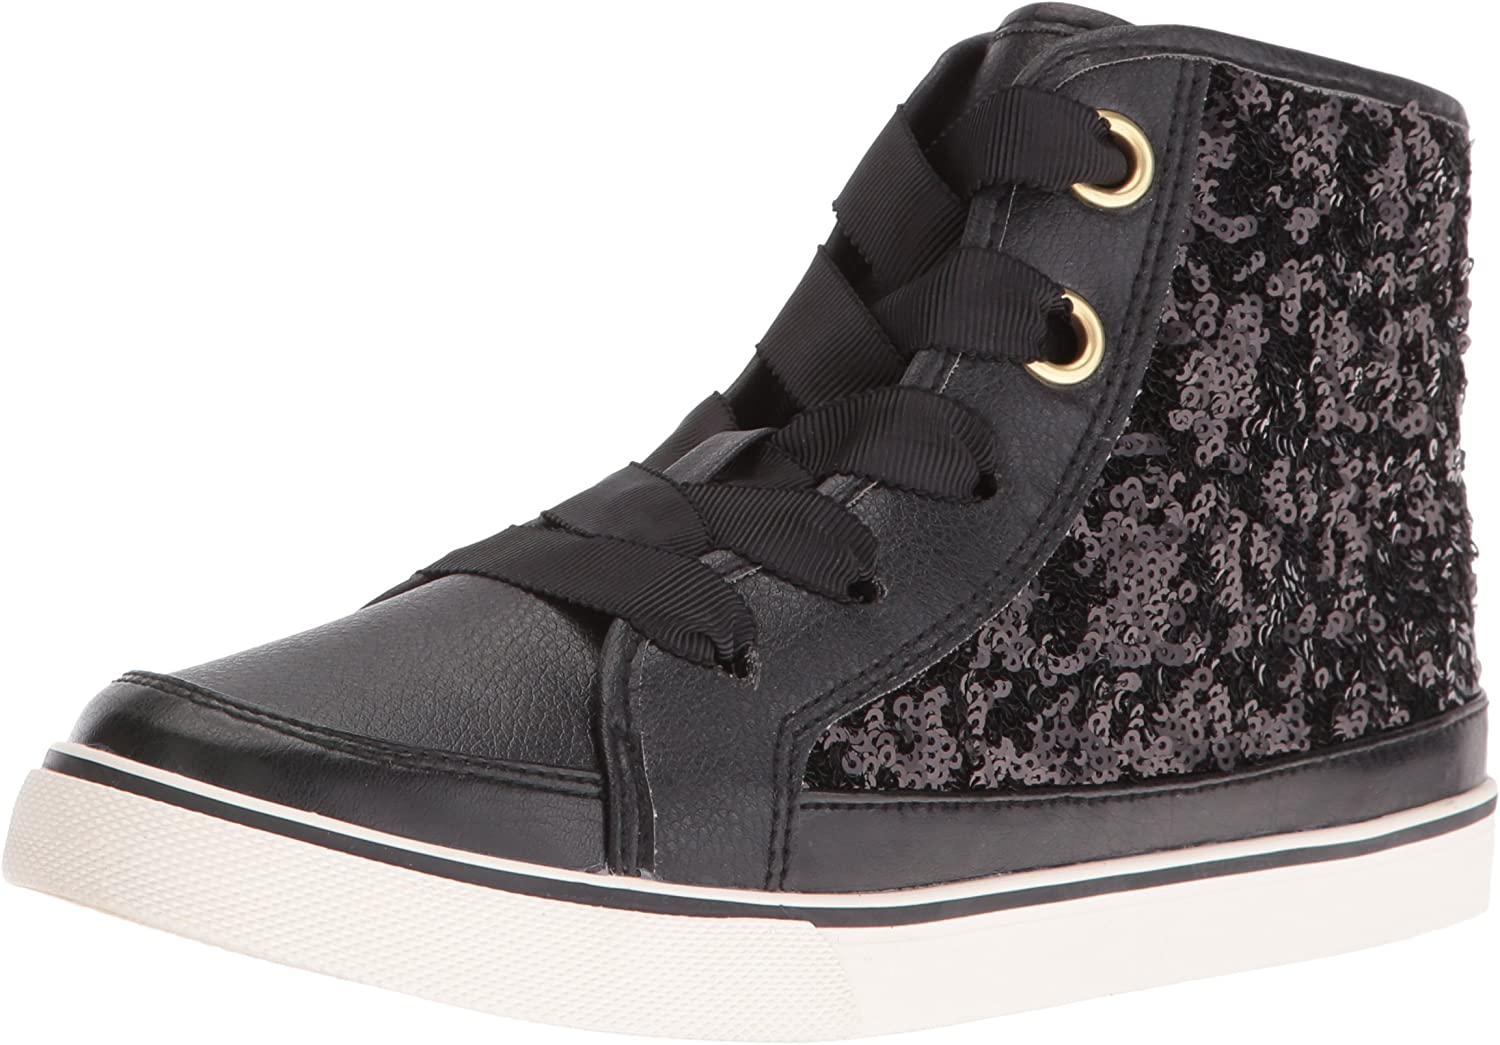 The Children's Place Unisex-Child Girls' Lace-up Sneaker